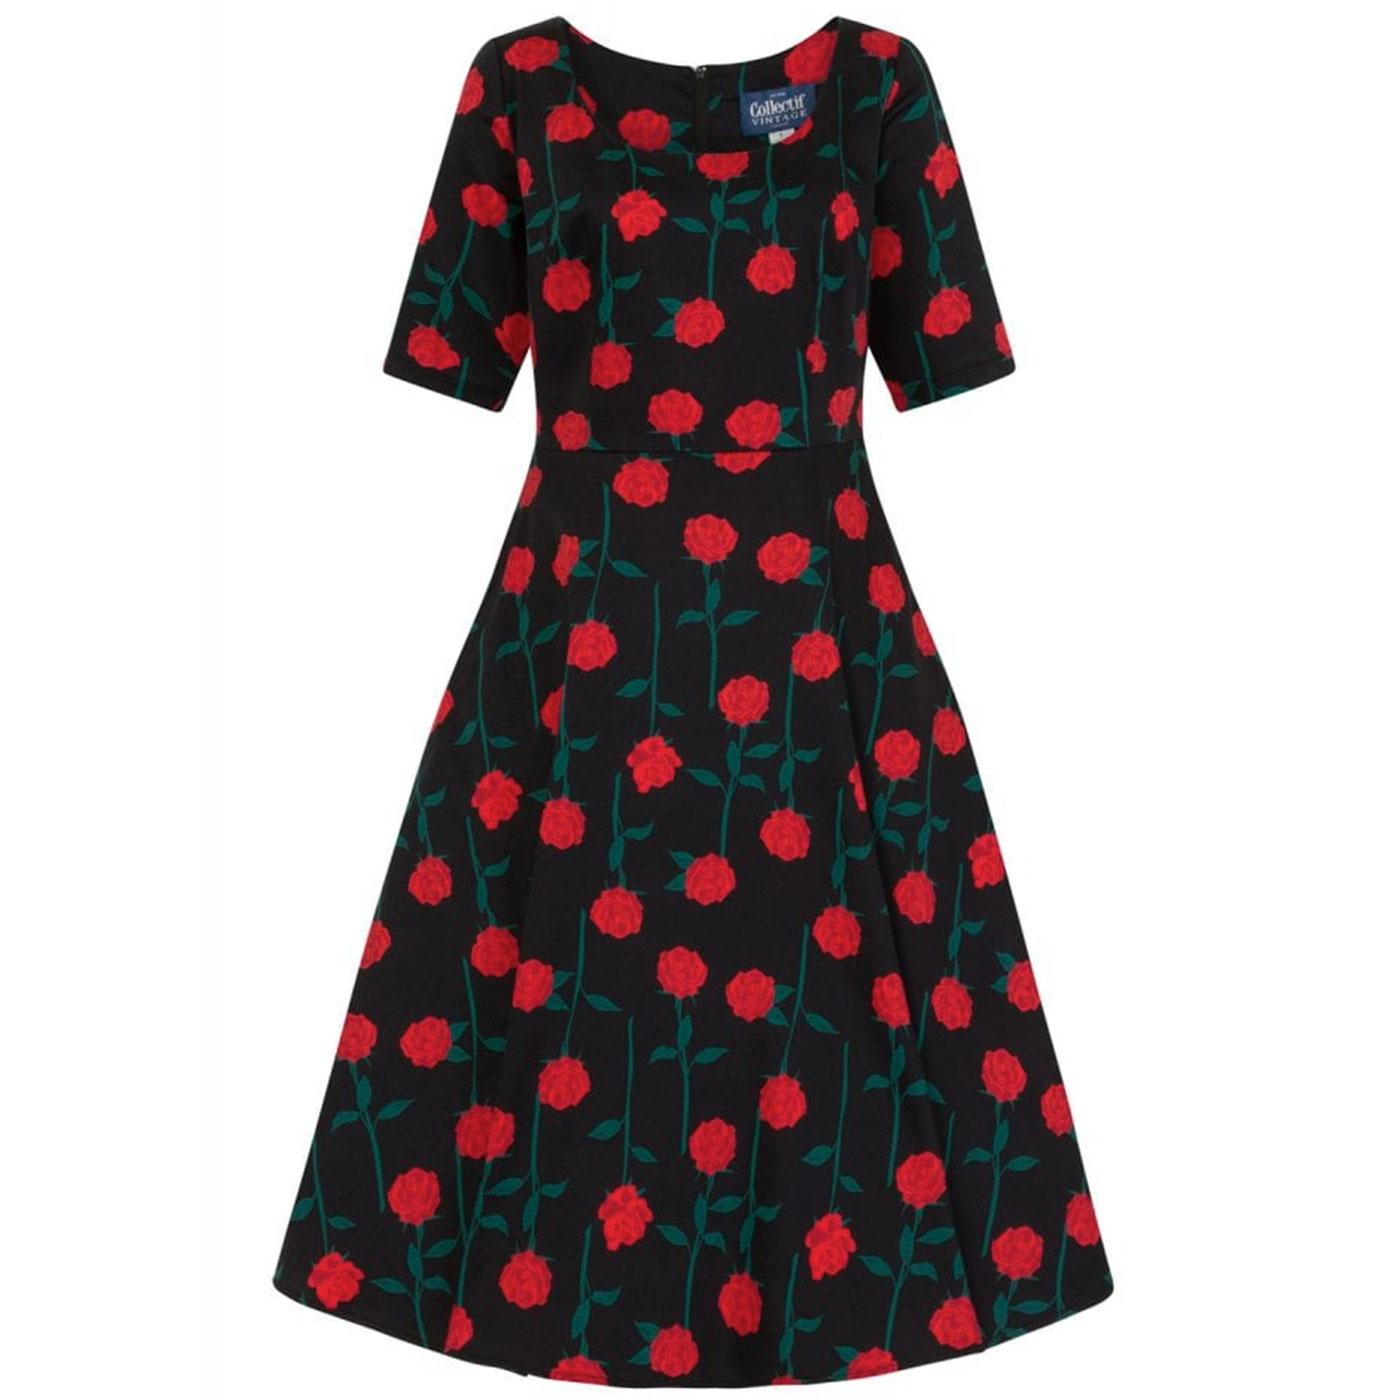 Amber Rose COLLECTIF Retro Vintage Swing Dress